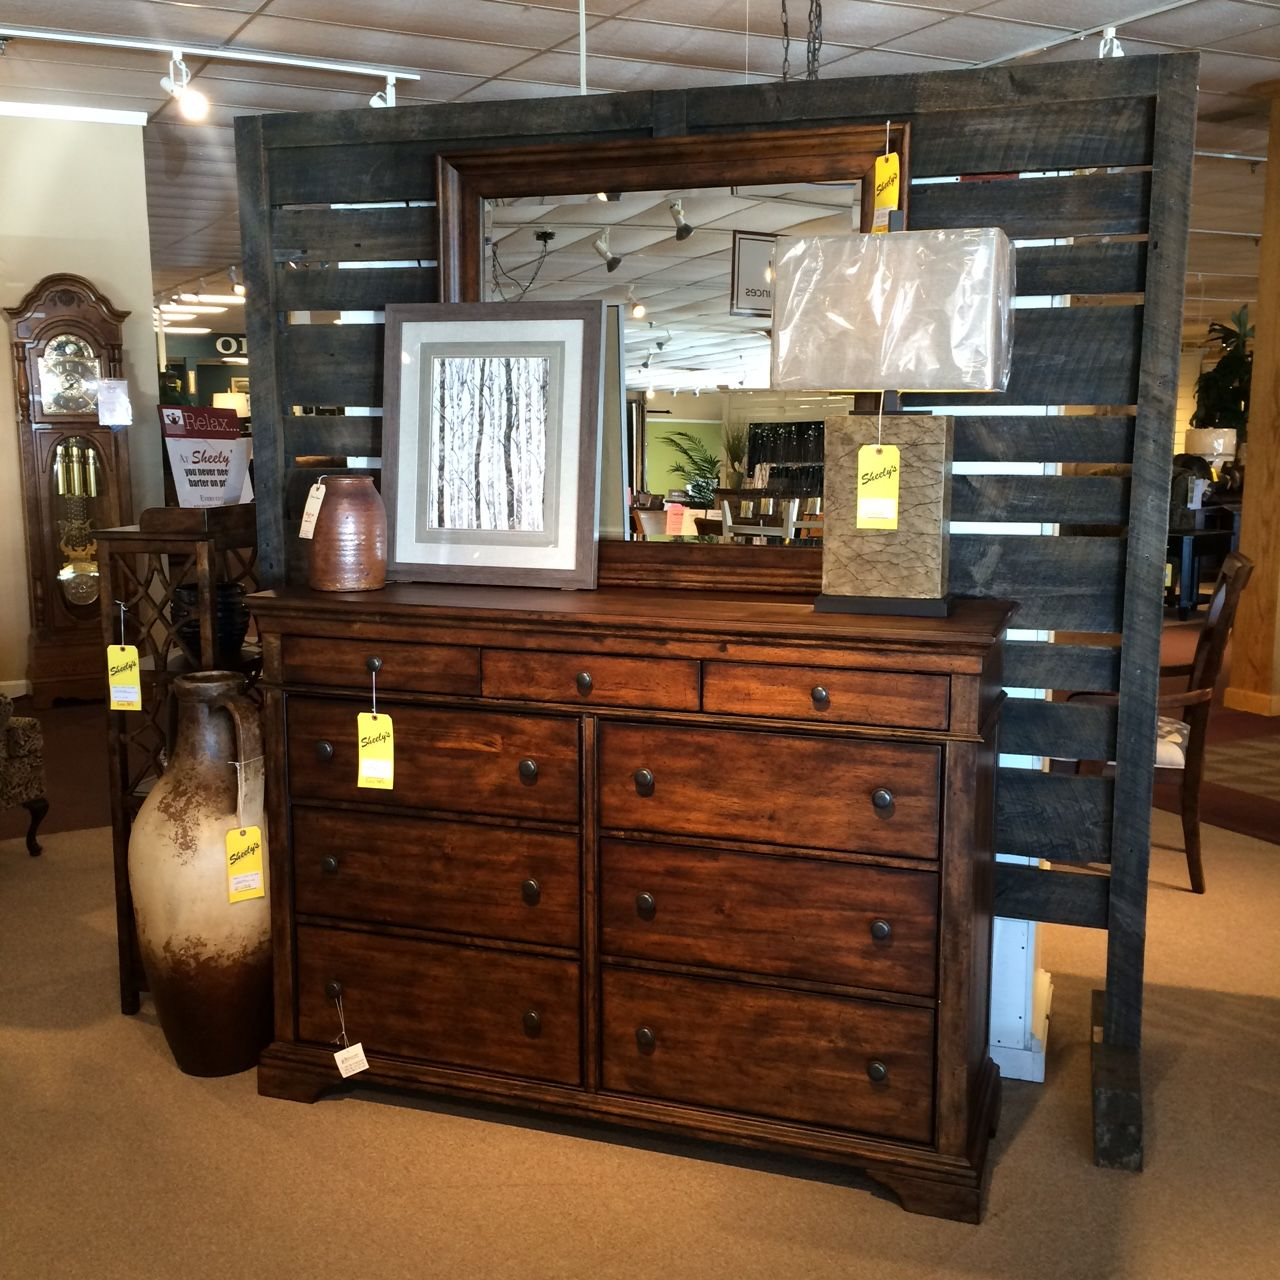 The trisha yearwood collection by klaussner at sheelysfurniture